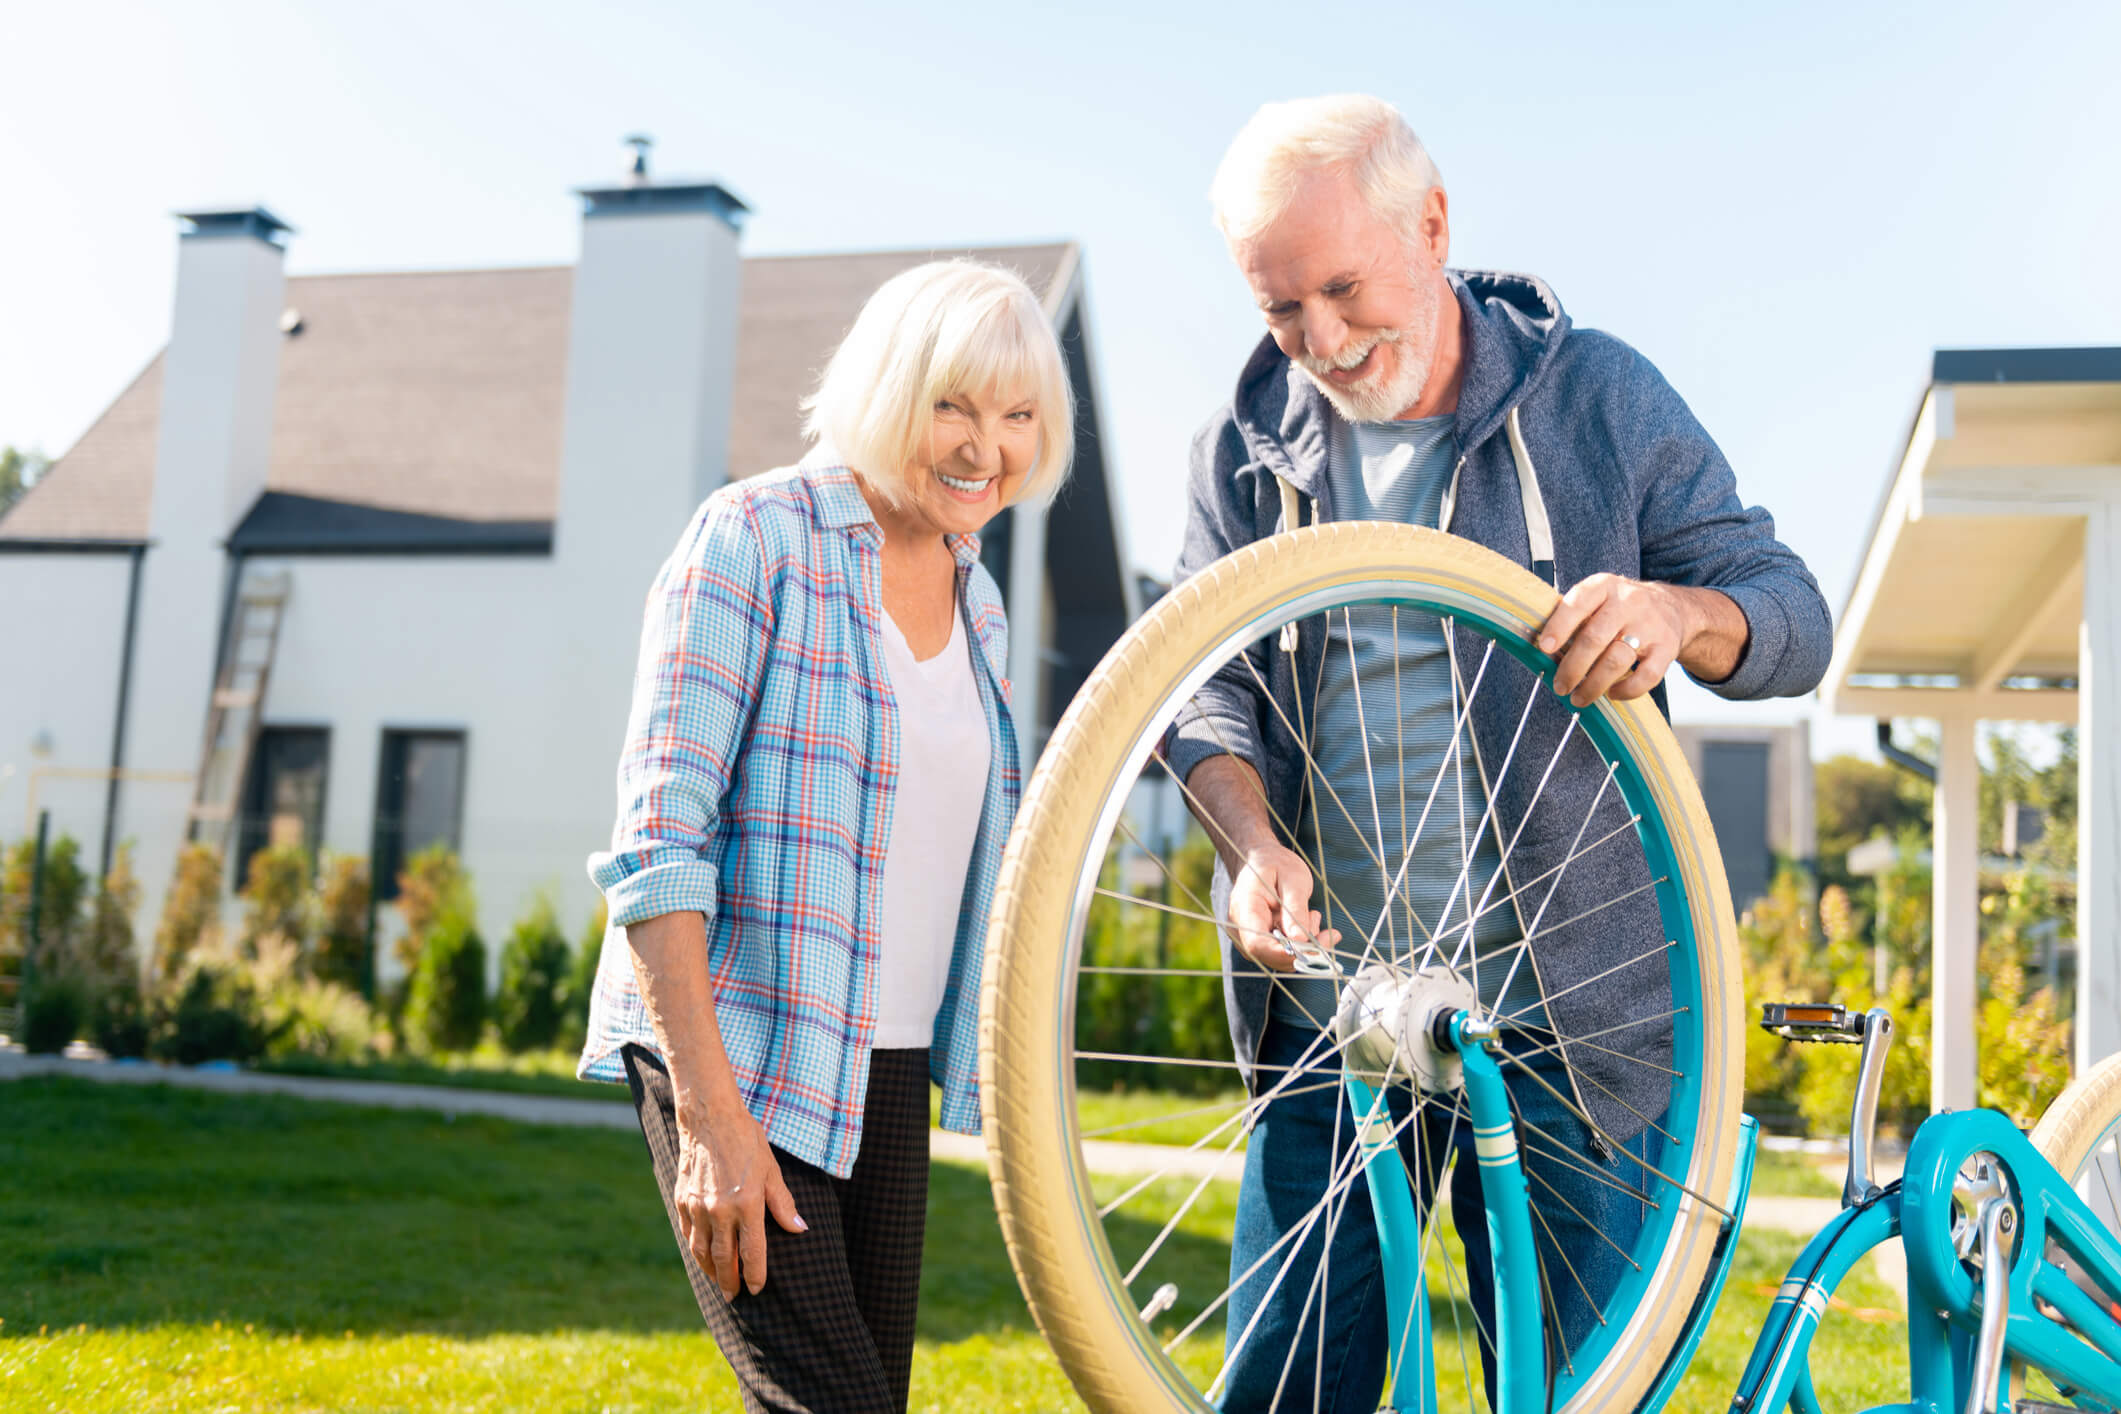 5 Things to Look for in an Assisted Living Community in Fort Worth